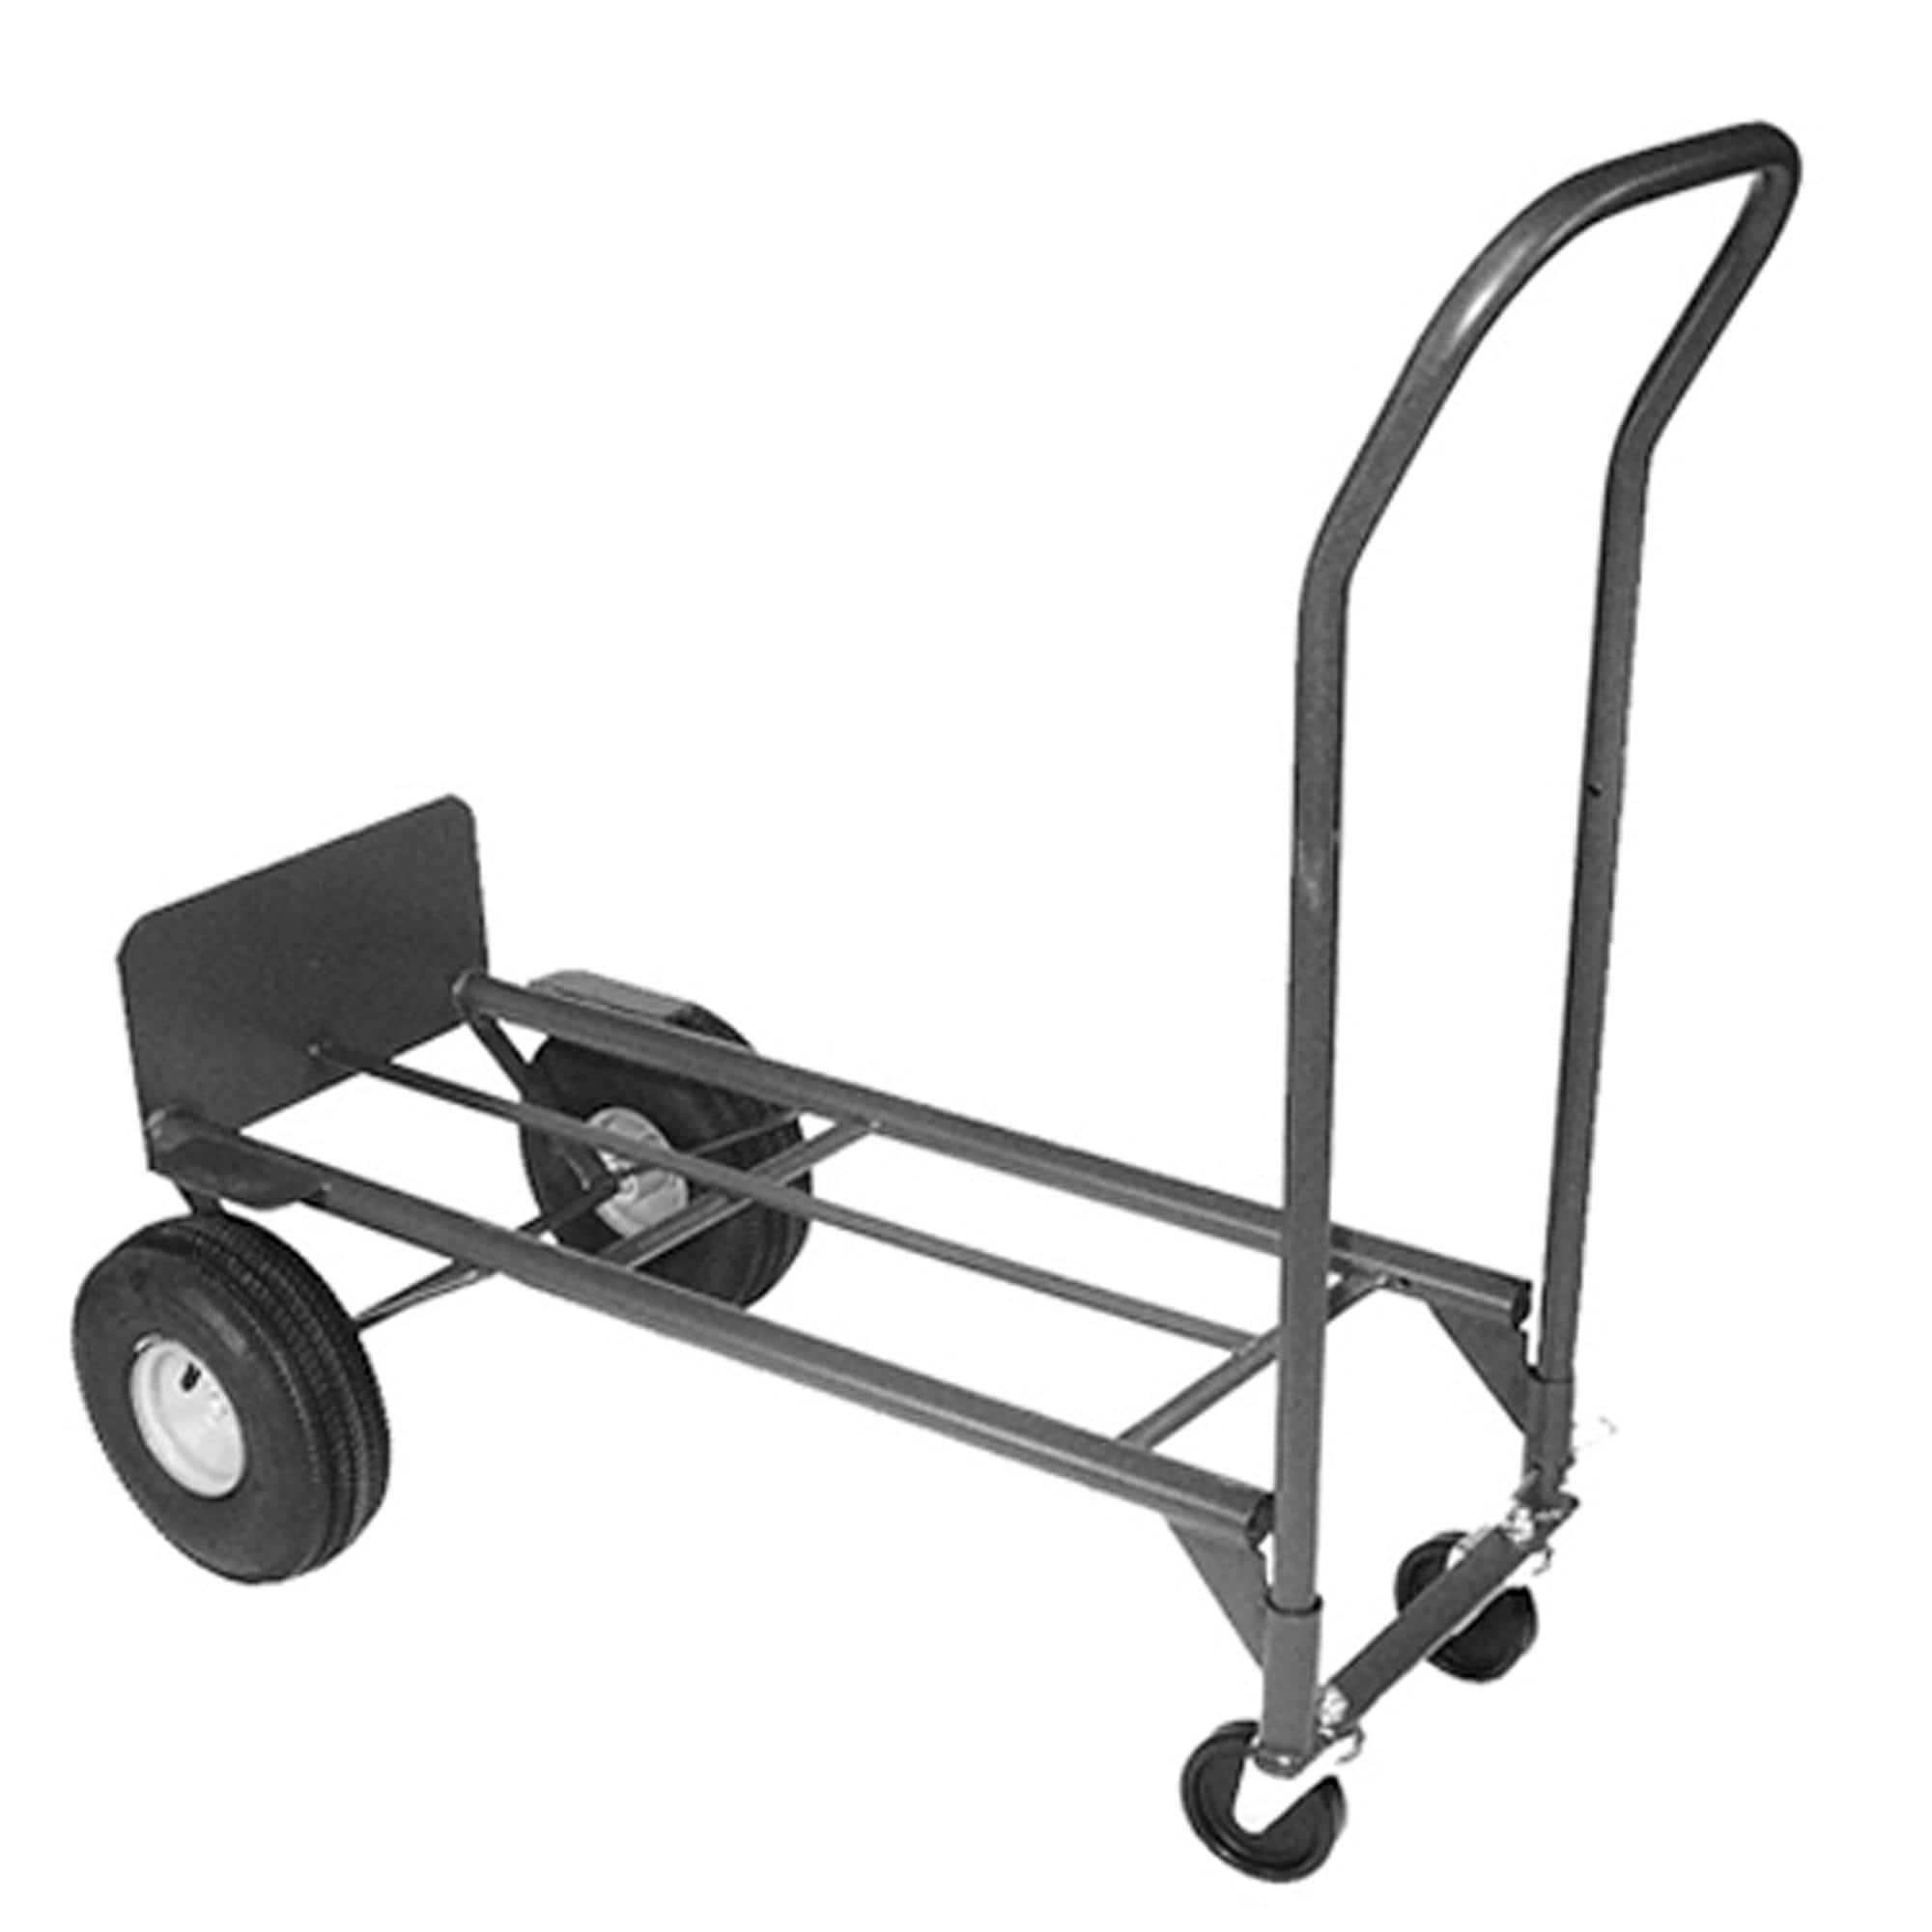 800 lb. Capacity 2-Way Convertible Hand Truck New Account Pick Up Only $49.82